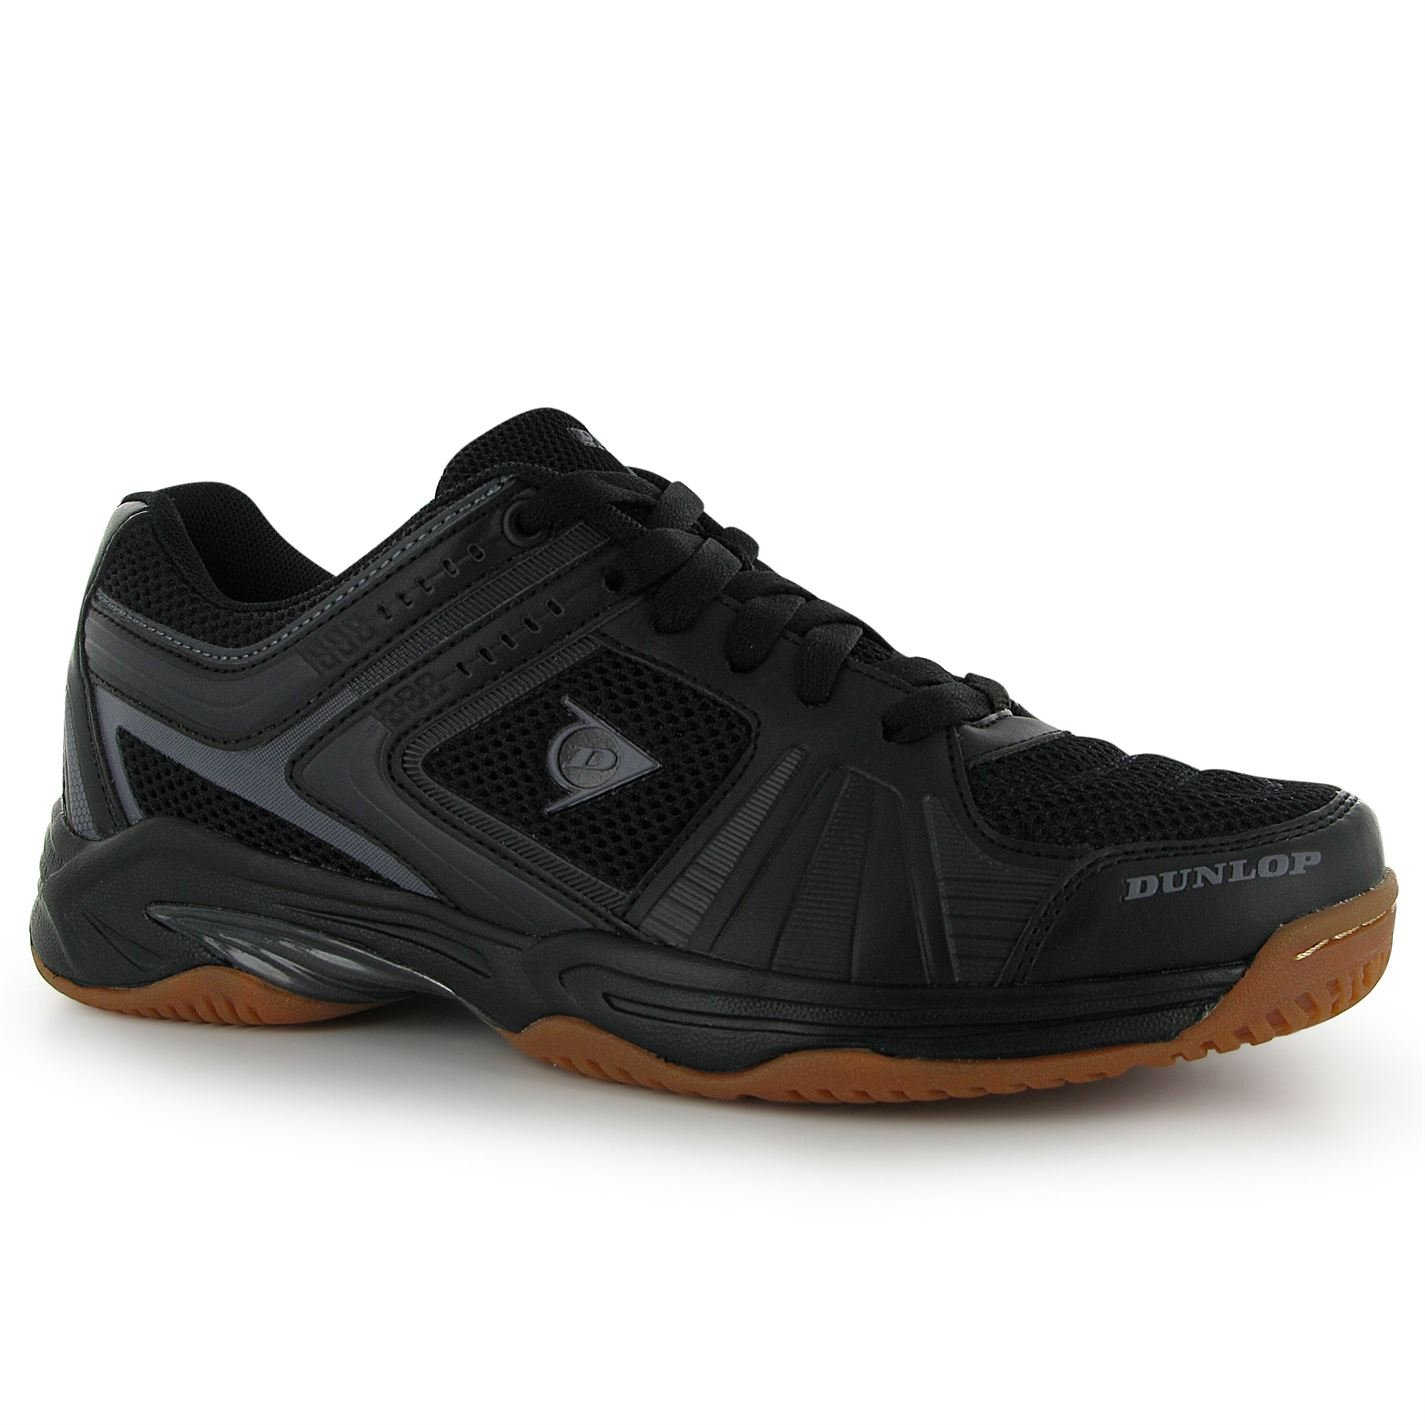 Dunlop Mens Indoor Squash Shoe Molded Non Marking Sole Footwear Brand New Black/Charcoal 12 (46)